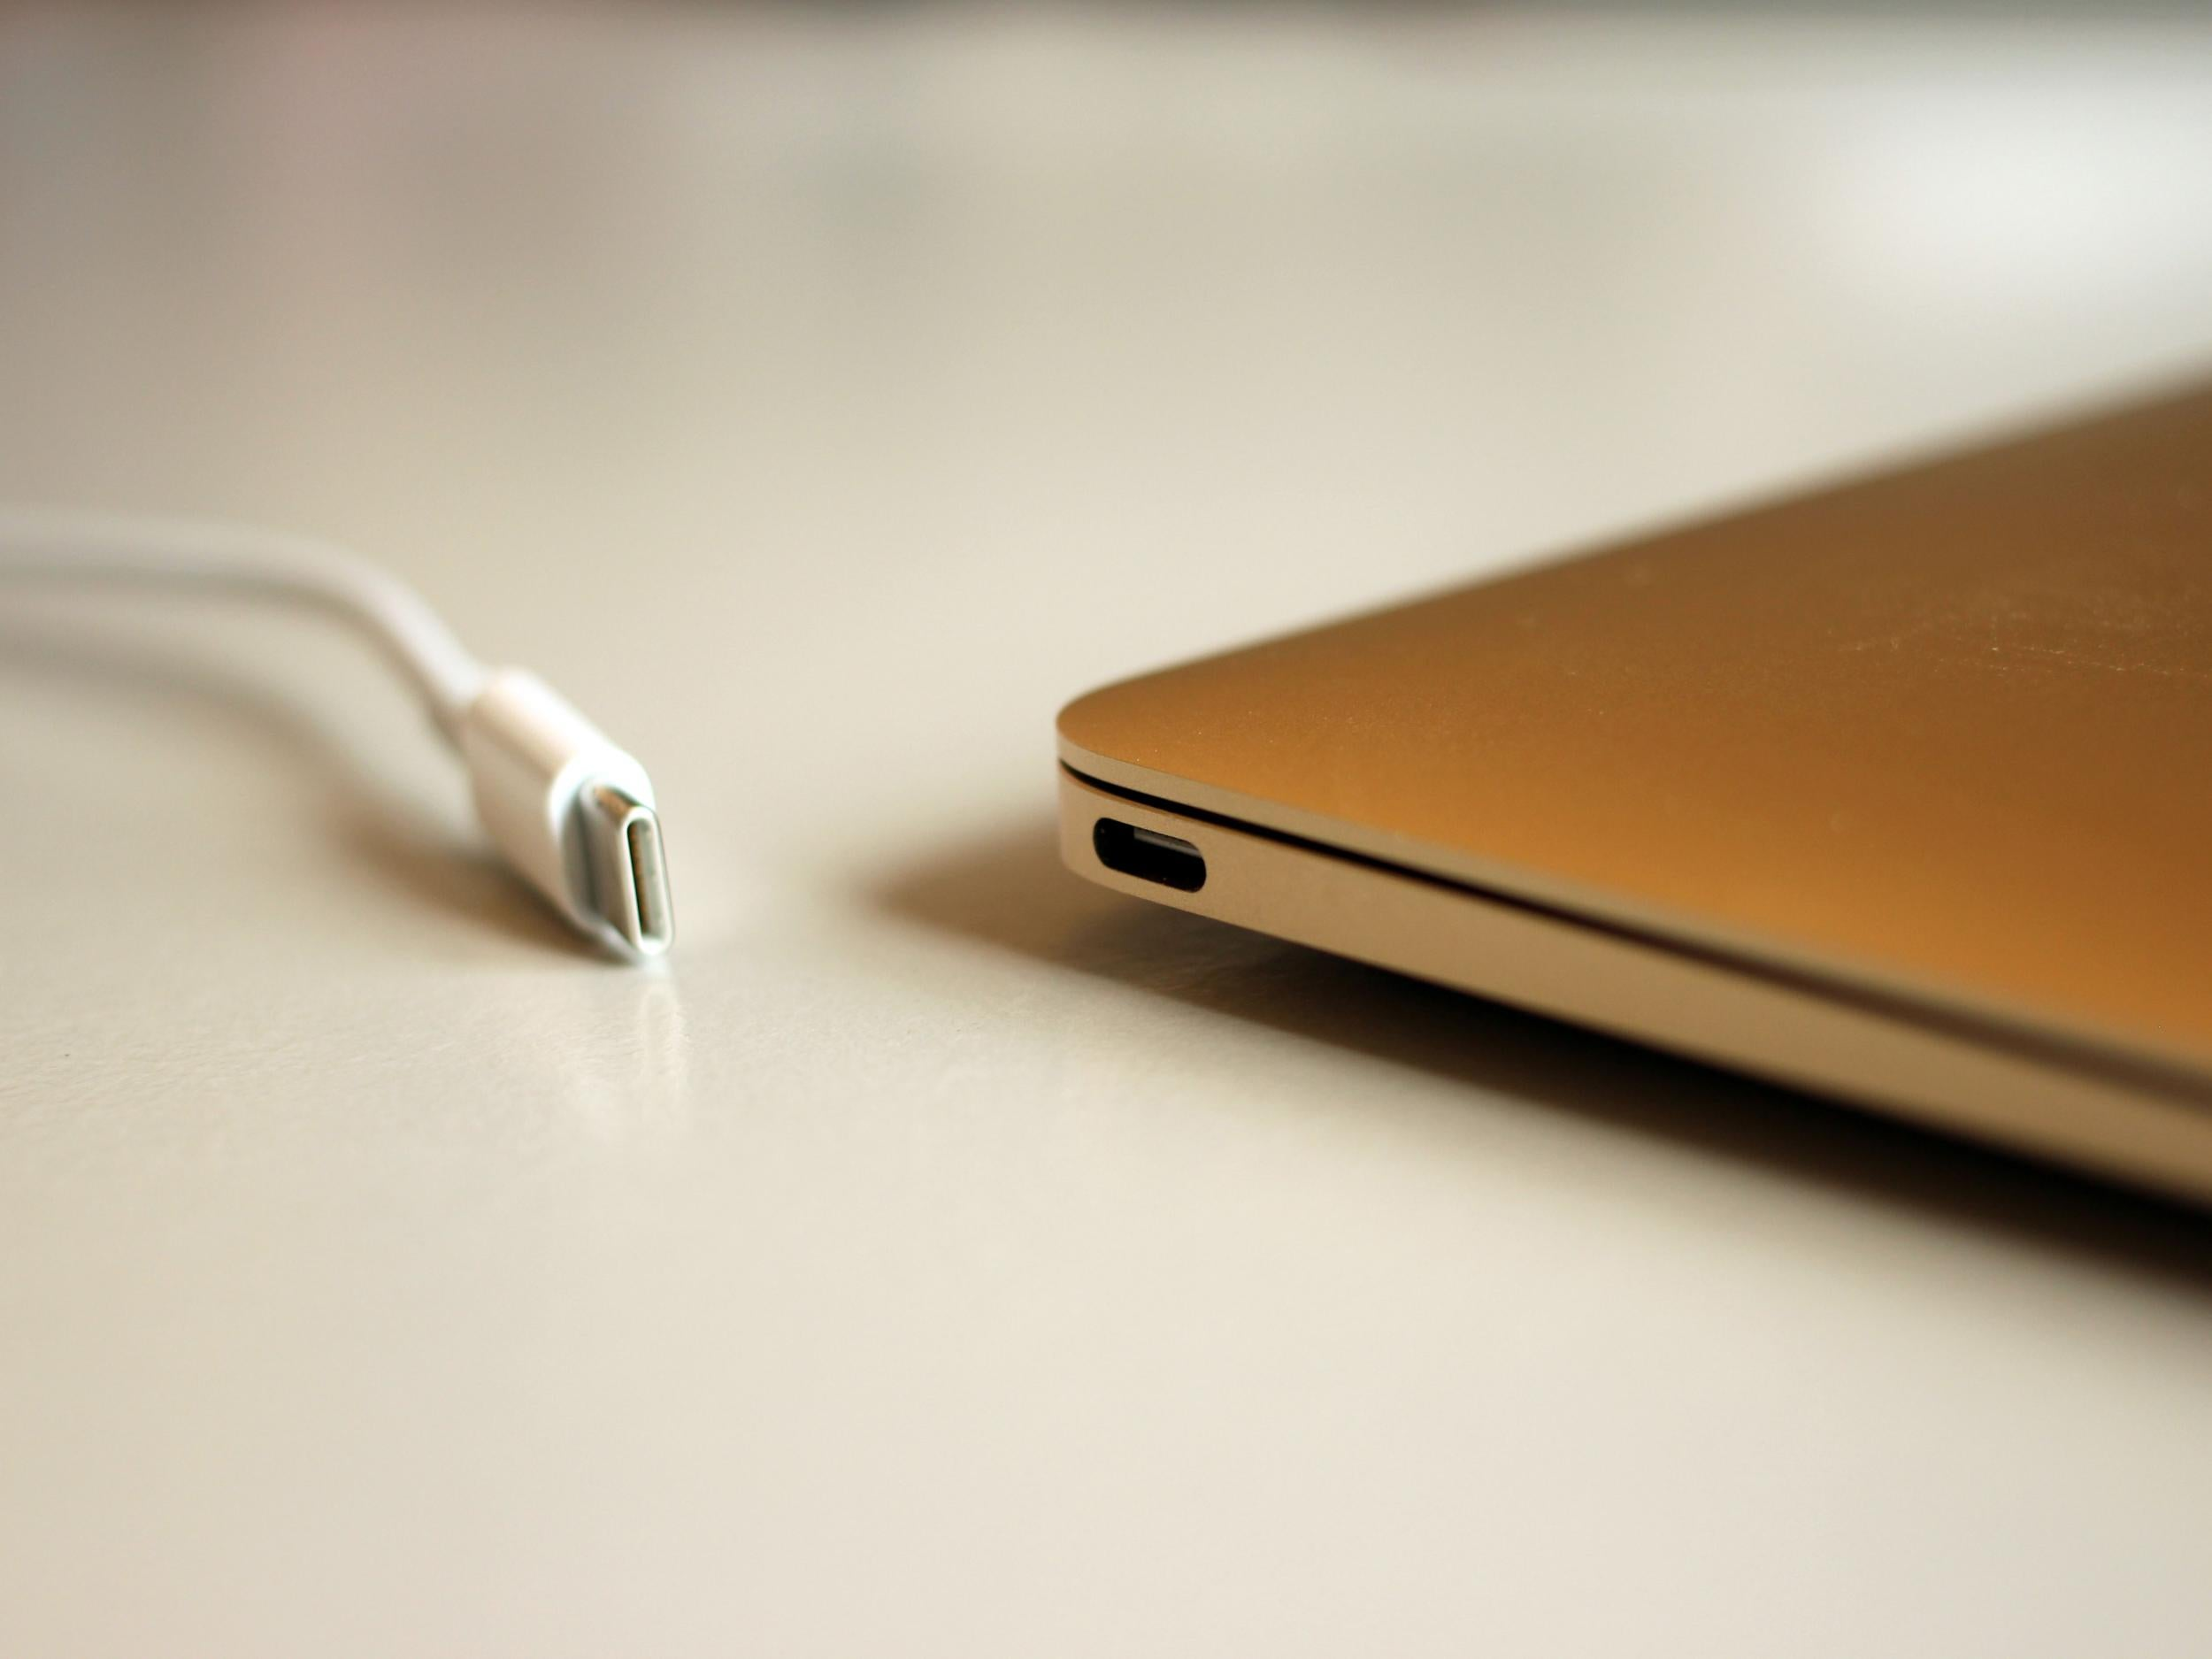 Cheap Usb Type C Cable Destroys Google Engineers Brand New 800 Wiring Laptop The Independent